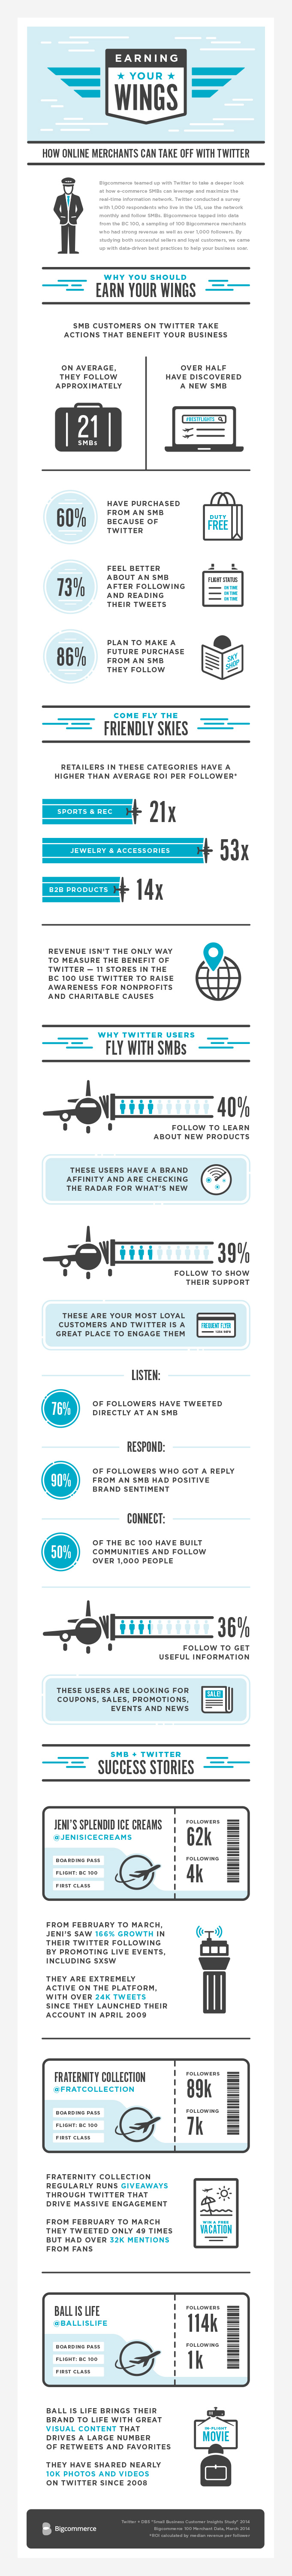 bigcommerce-twitter-infographic